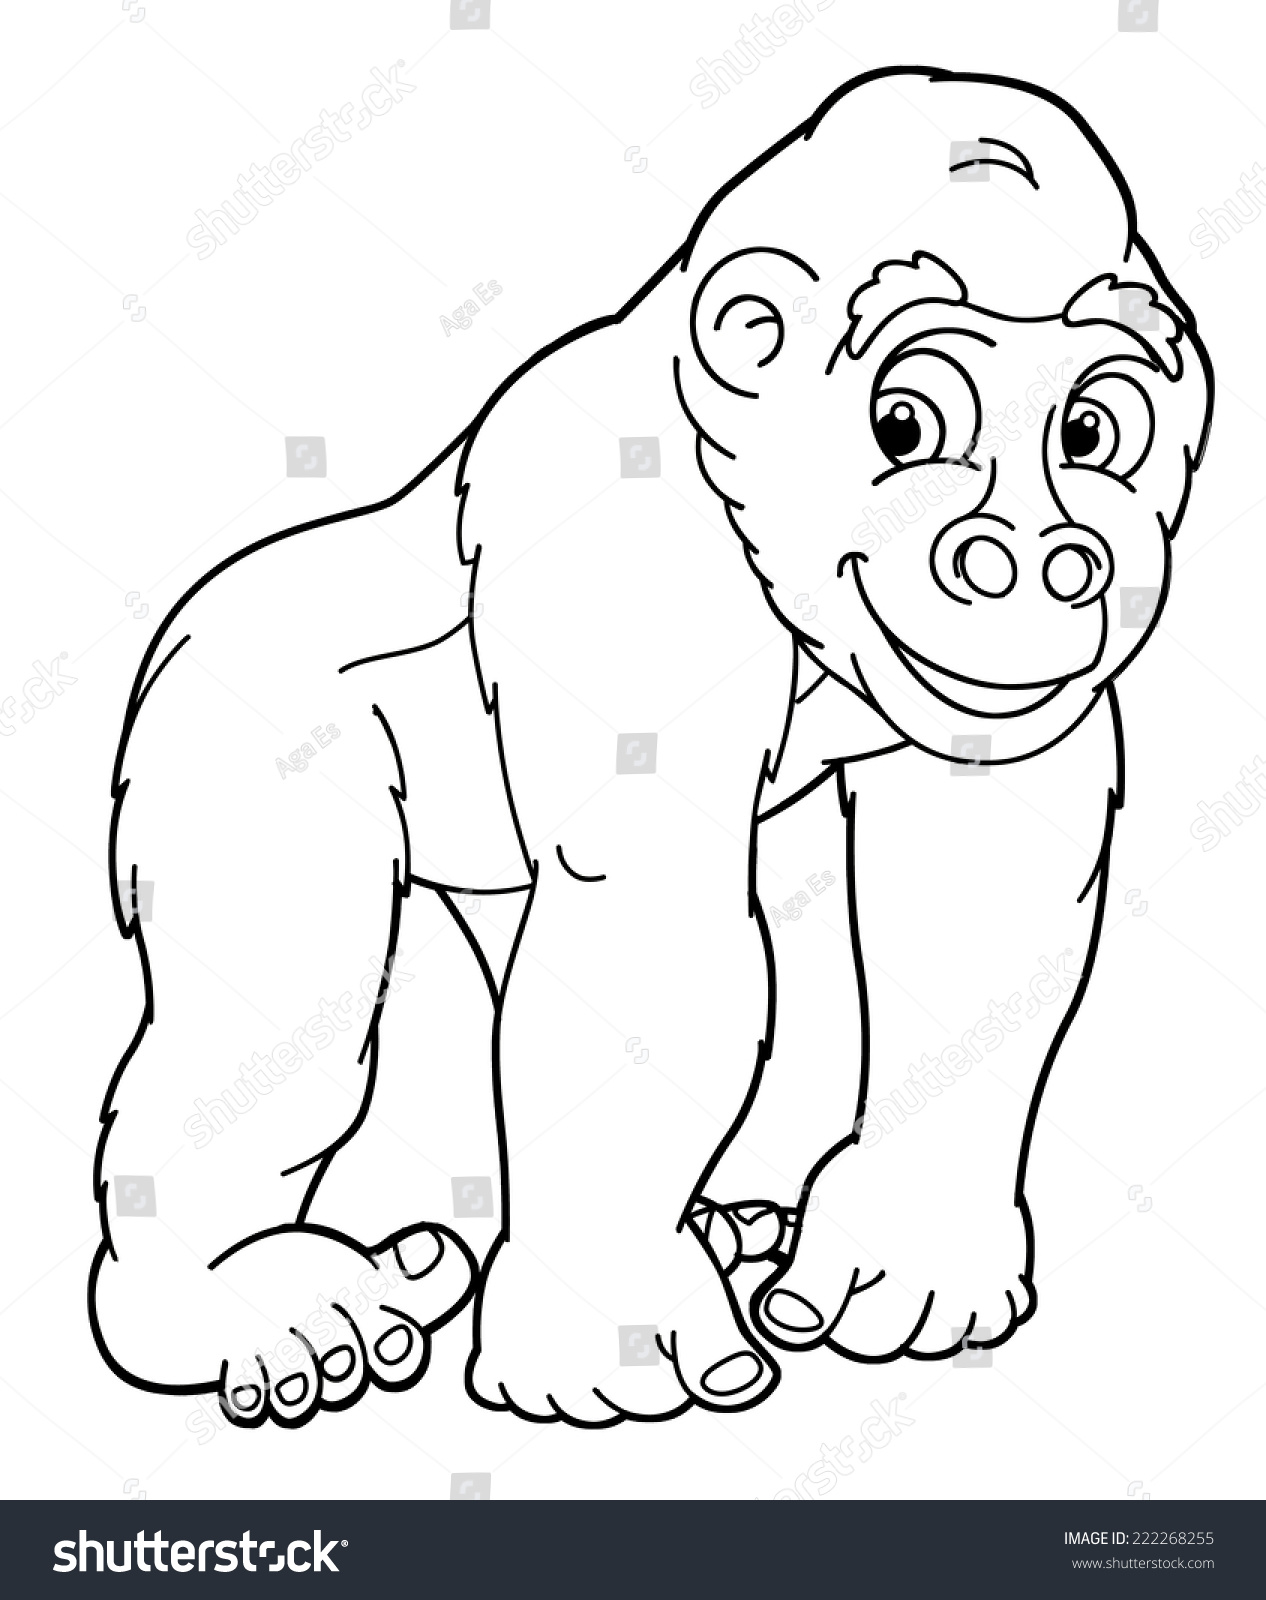 Coloring sheet gorilla - Galerry Cartoon Gorilla Coloring Page